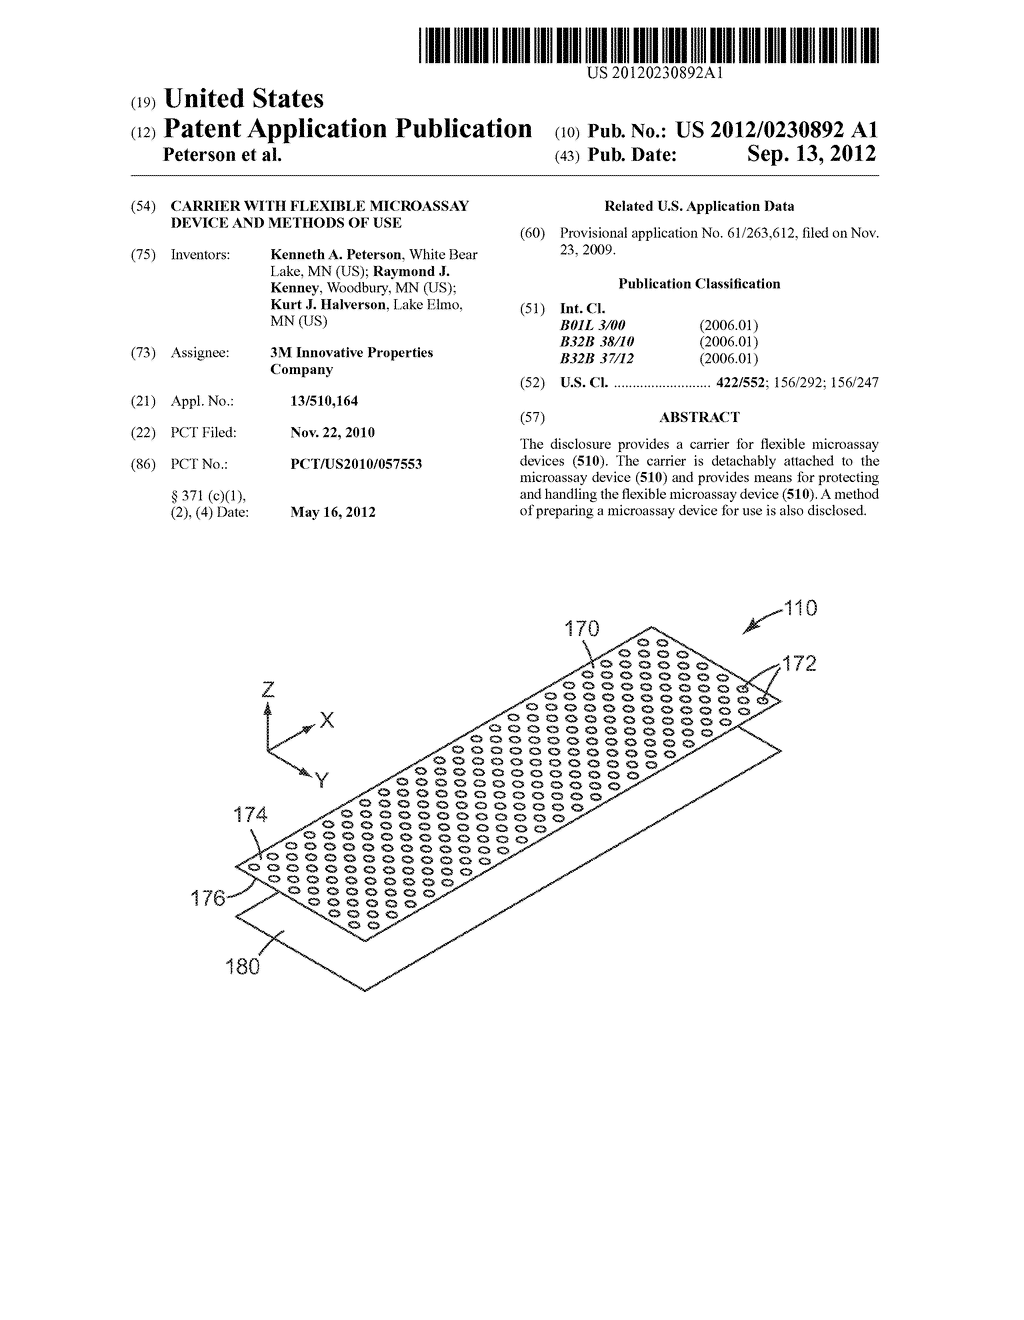 CARRIER WITH FLEXIBLE MICROASSAY DEVICE AND METHODS OF USE - diagram, schematic, and image 01